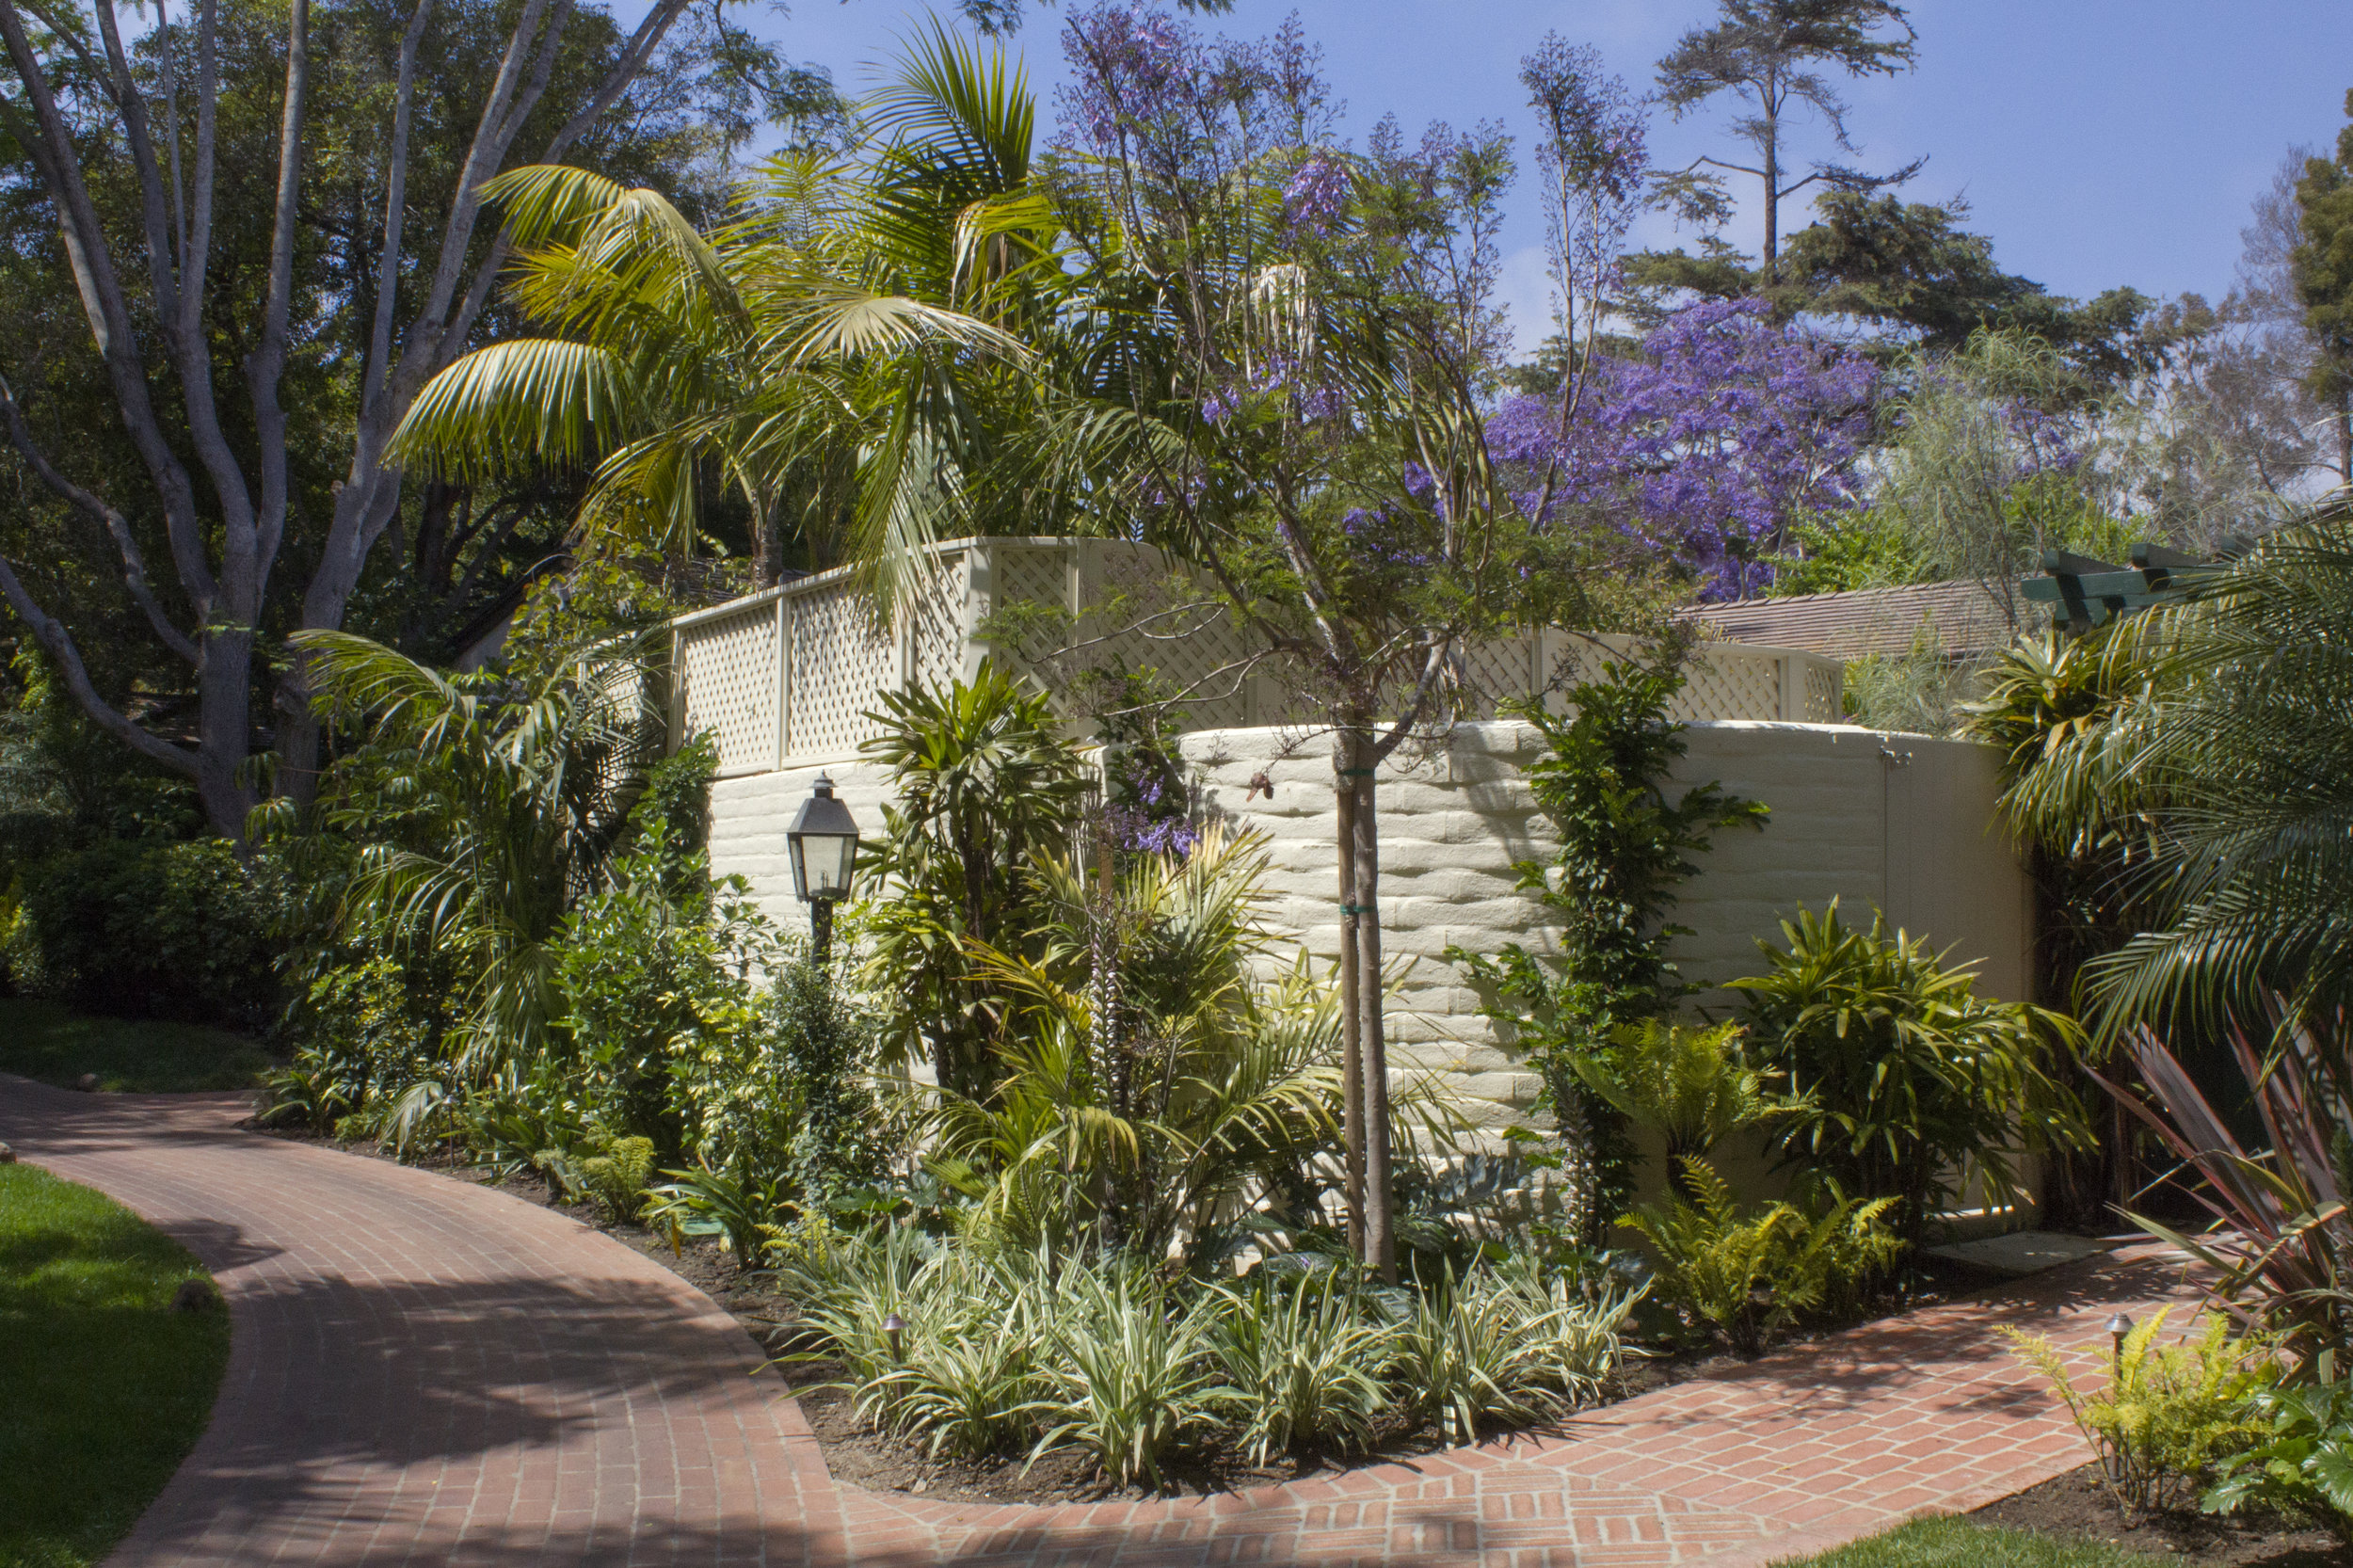 Establishing screening with mature plants to sofent the privacy walls.